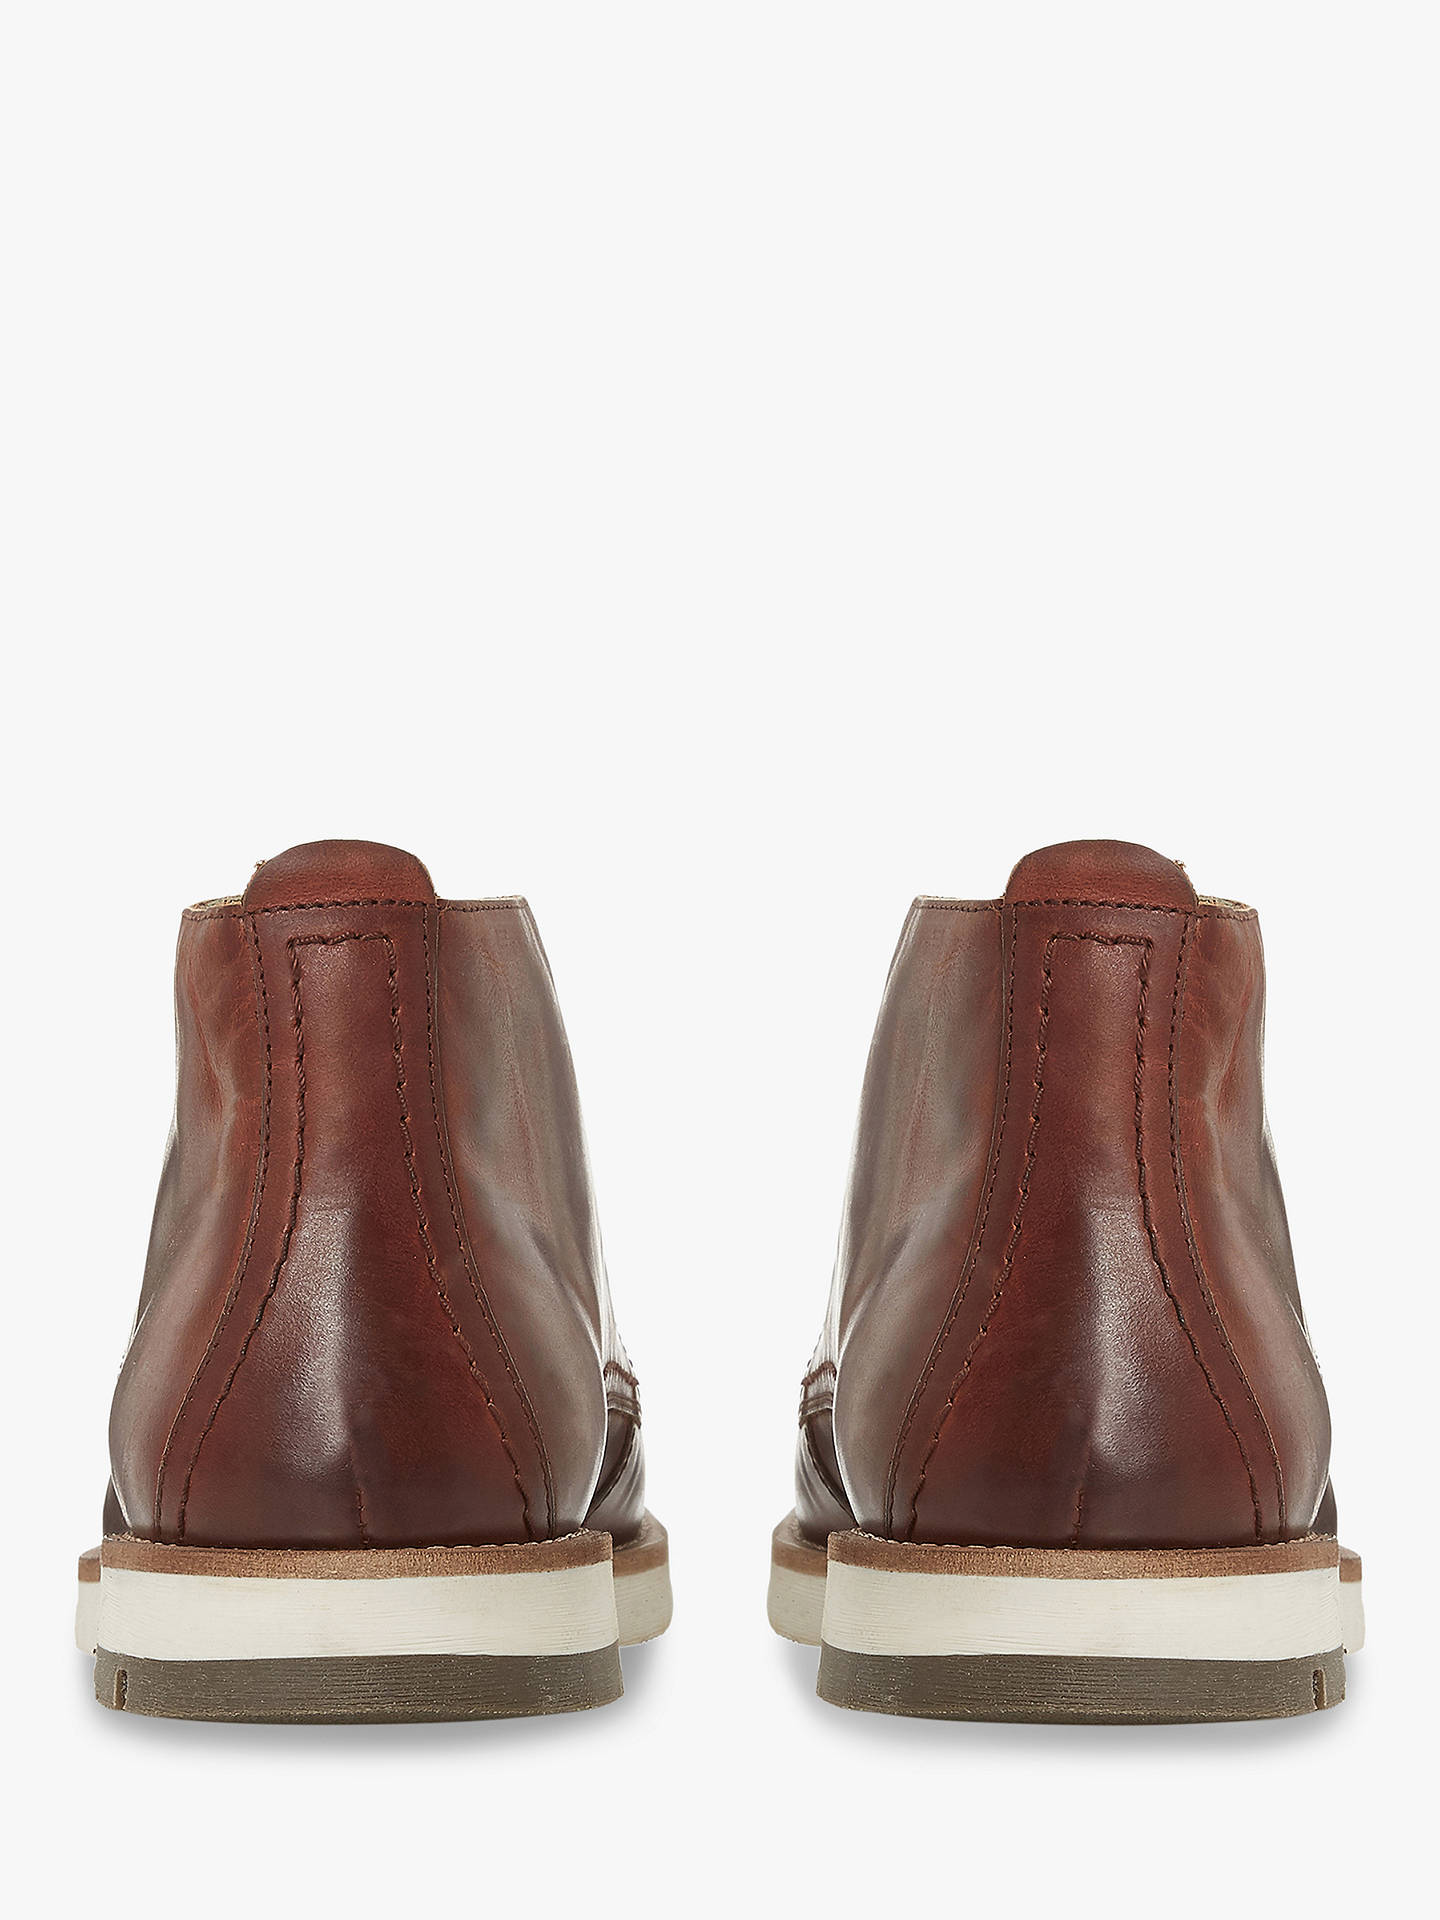 BuyBertie Cashin II Leather Boots, Tan, 6 Online at johnlewis.com